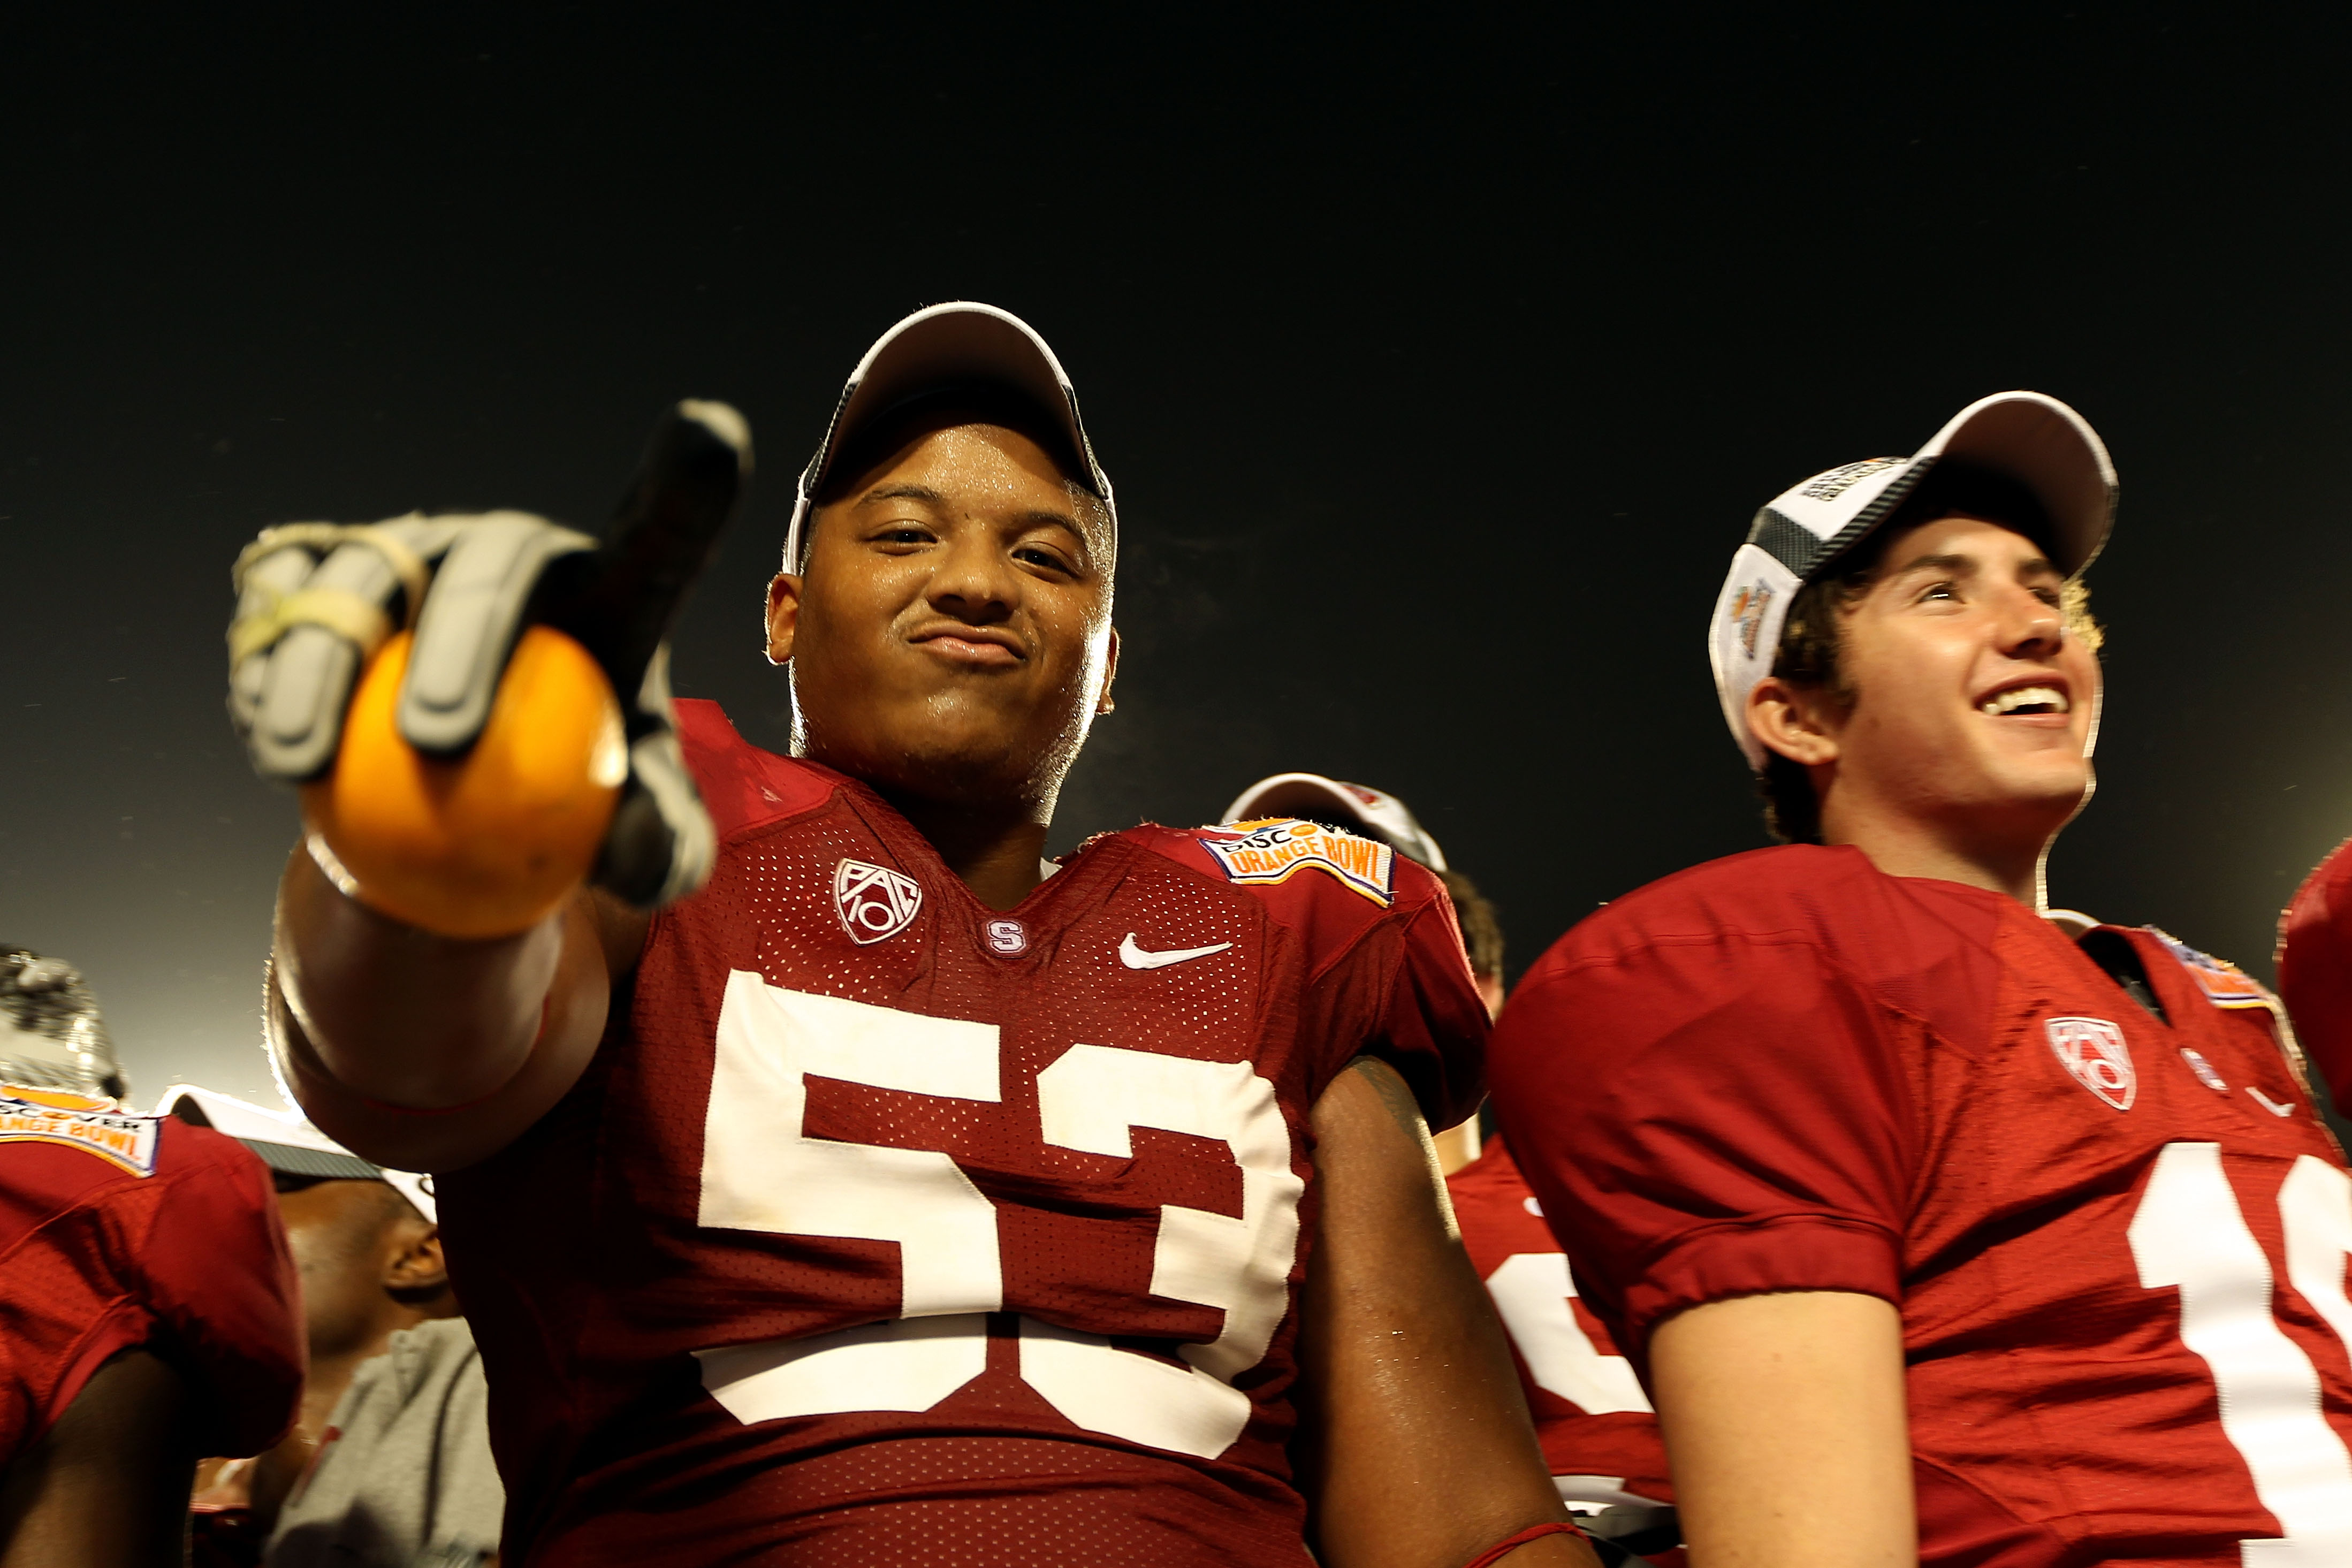 Celebrating a tasty Orange Bowl victory, and his first and only season as a college right tackle.